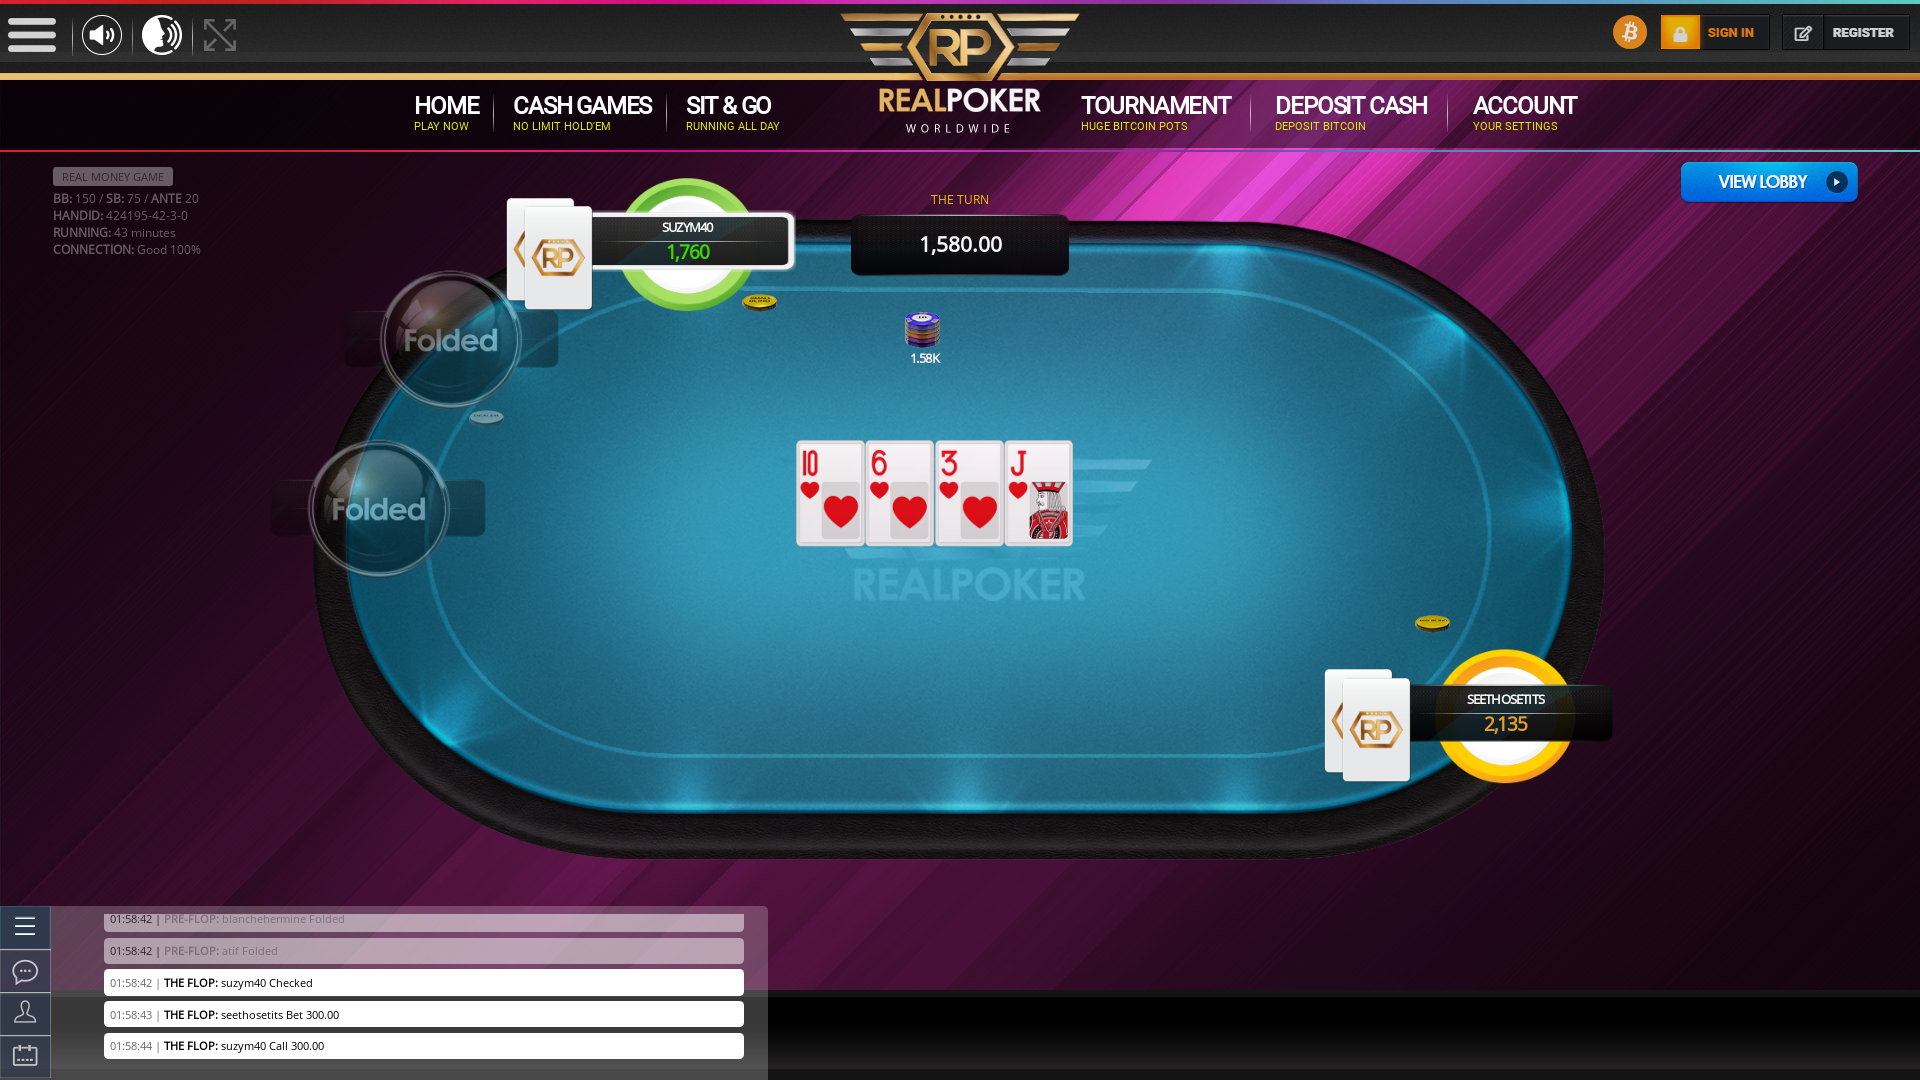 Real poker on a 10 player table in the 43rd minute of the game